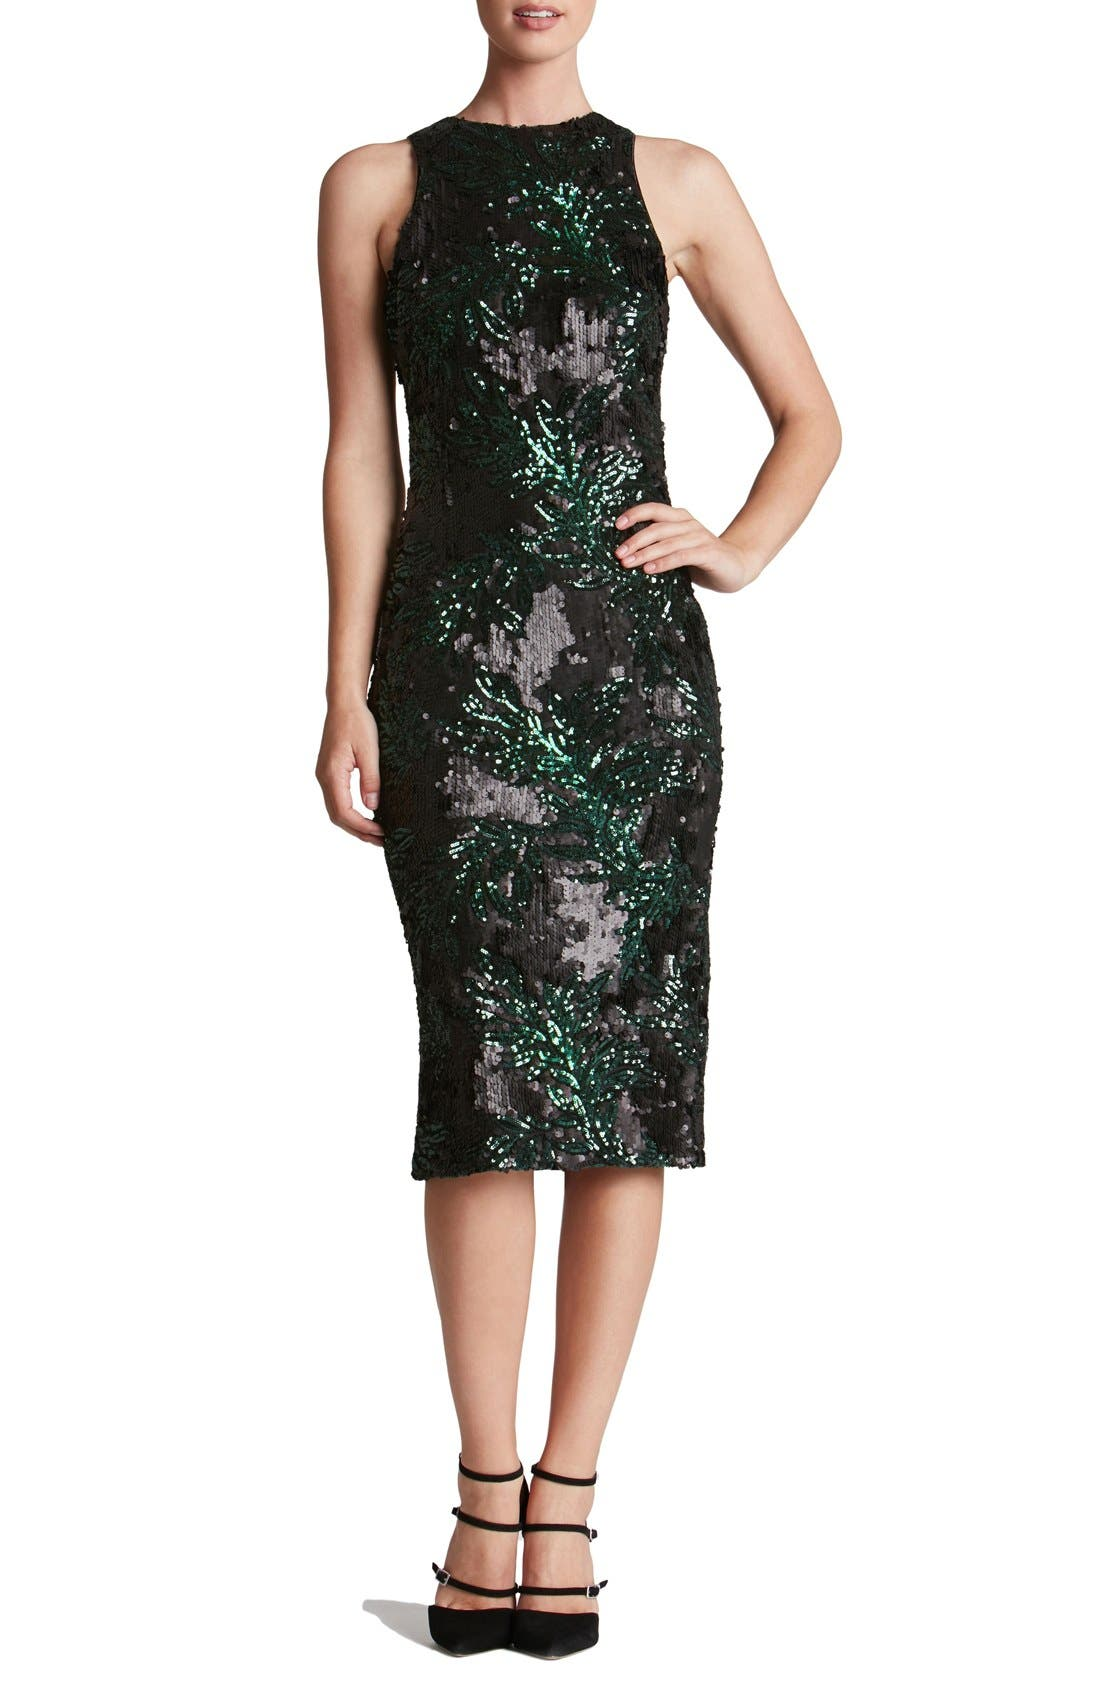 Alternate Image 1 Selected - Dress the Population 'Shawn' Sequin Midi Dress